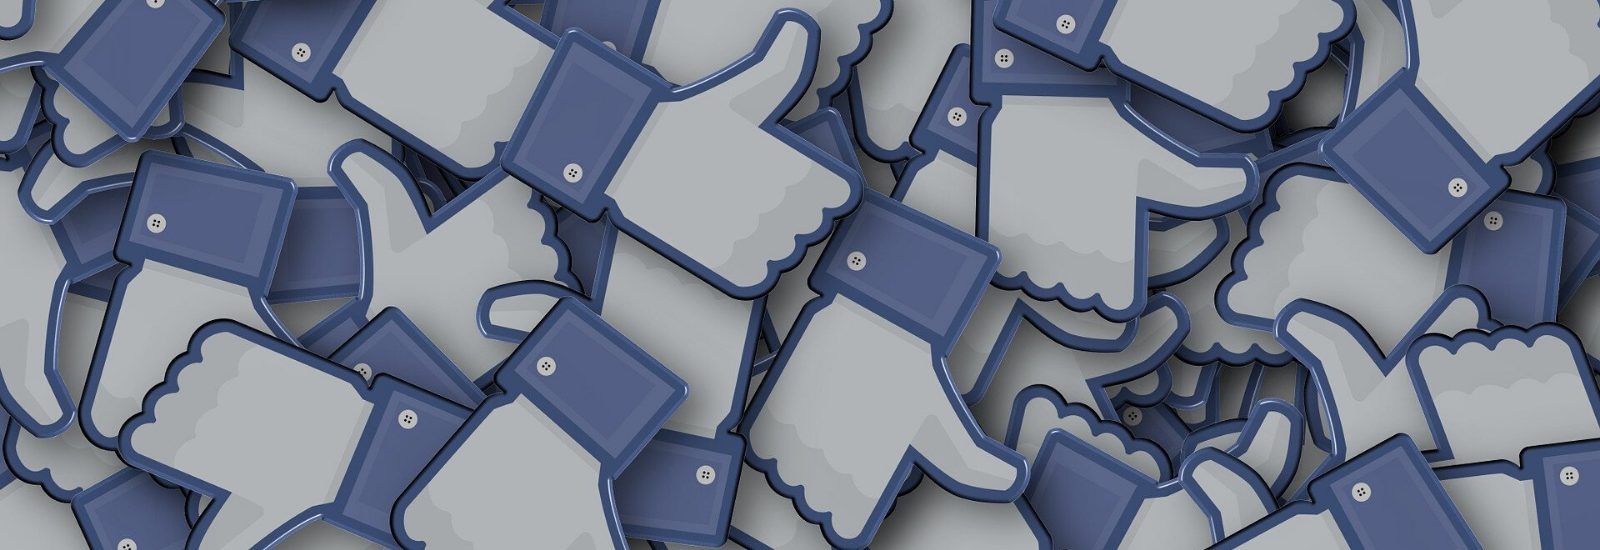 A mass of social media 'thumbs up' icons